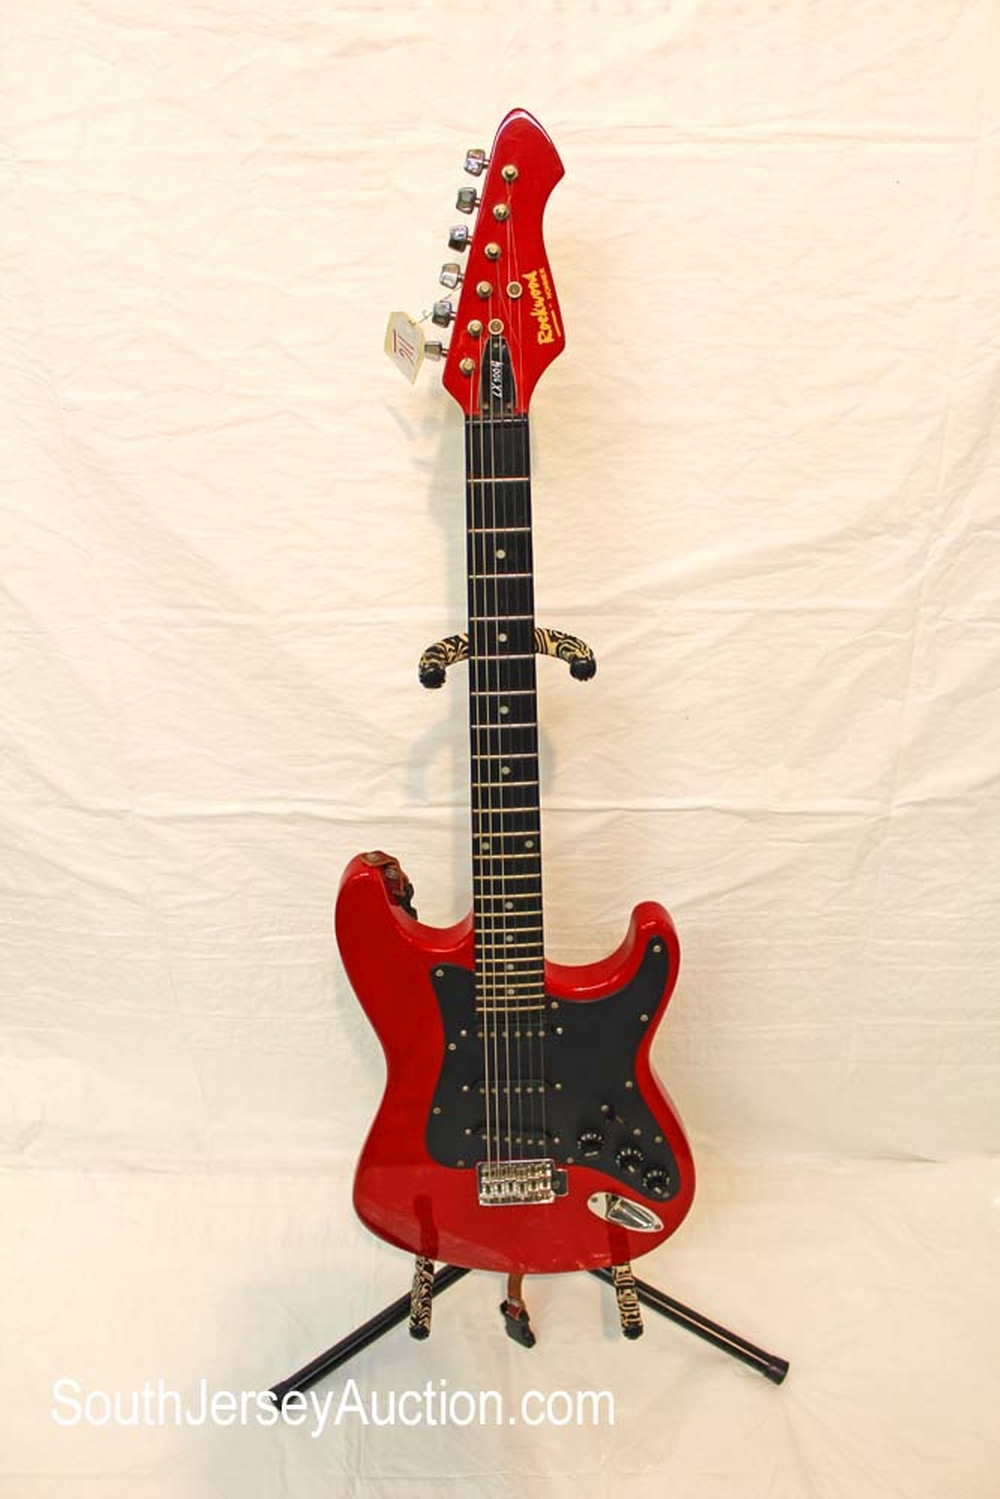 1980's Rockwood by Hohner, model LX100G guitar, made in Korea, red color, triple original pickups, (no strap) in fair condition